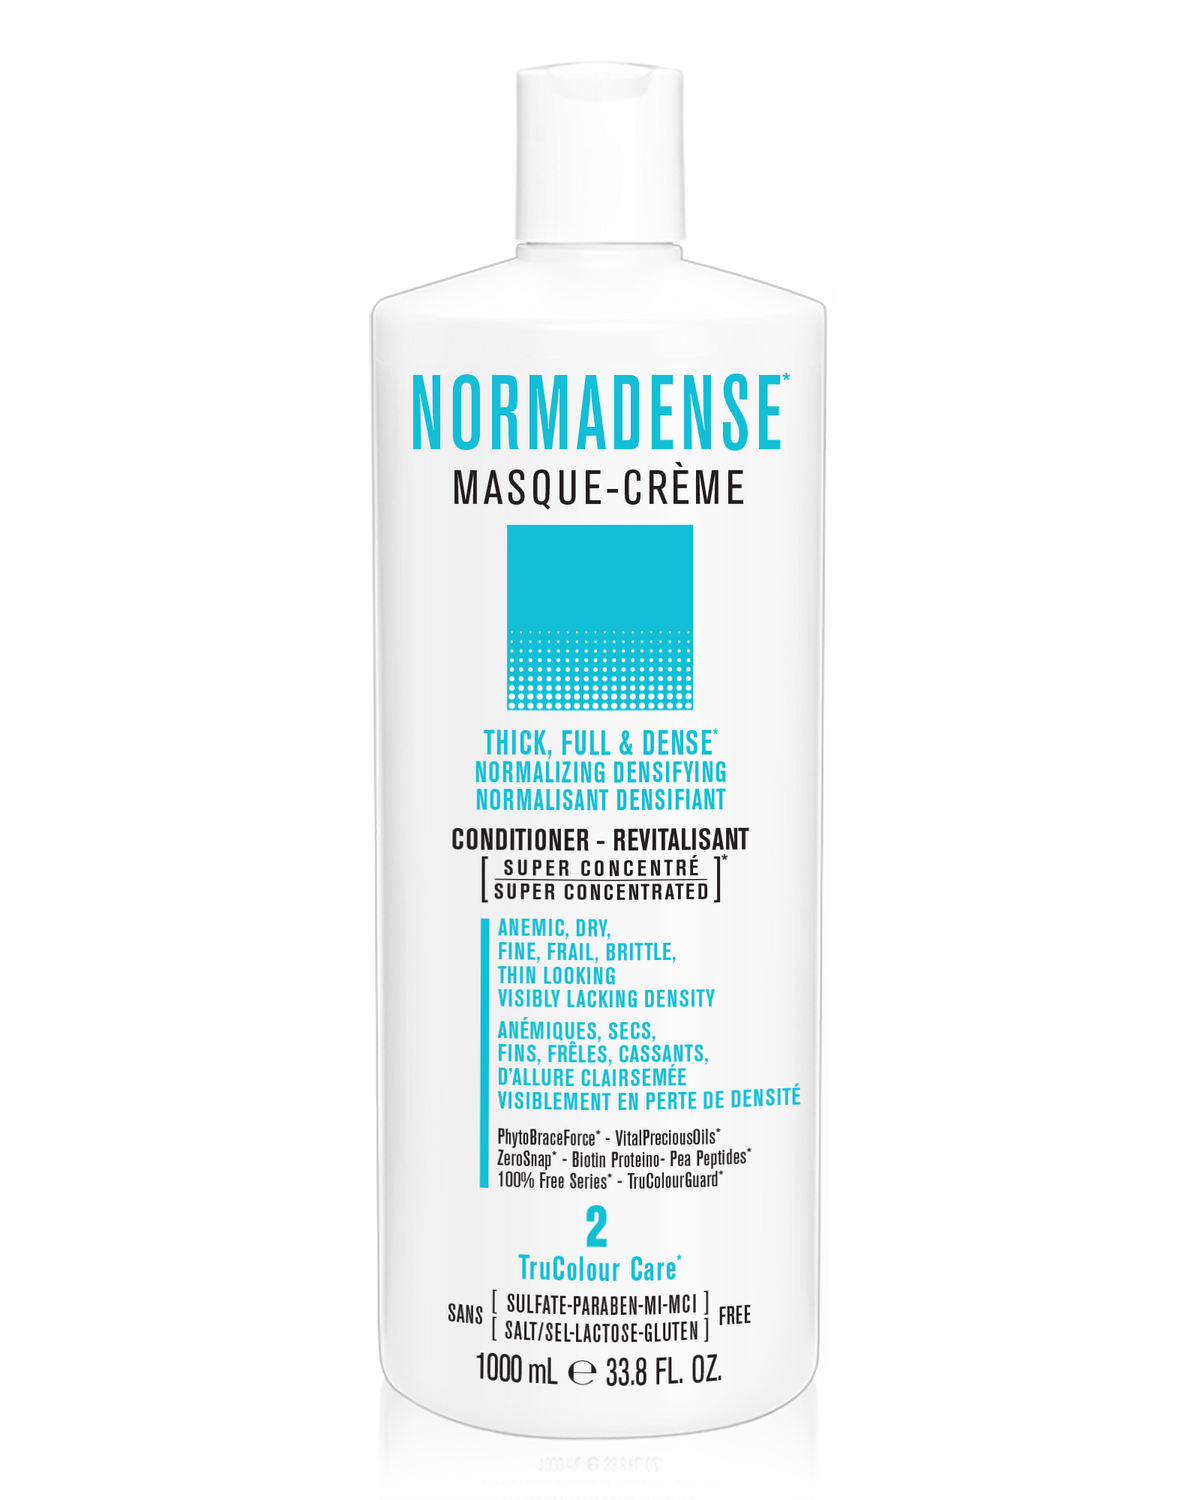 NORMADENSE 2 Thick, Full & Dense Masque-Creme (conditioner) - SNOBGIRLS.com